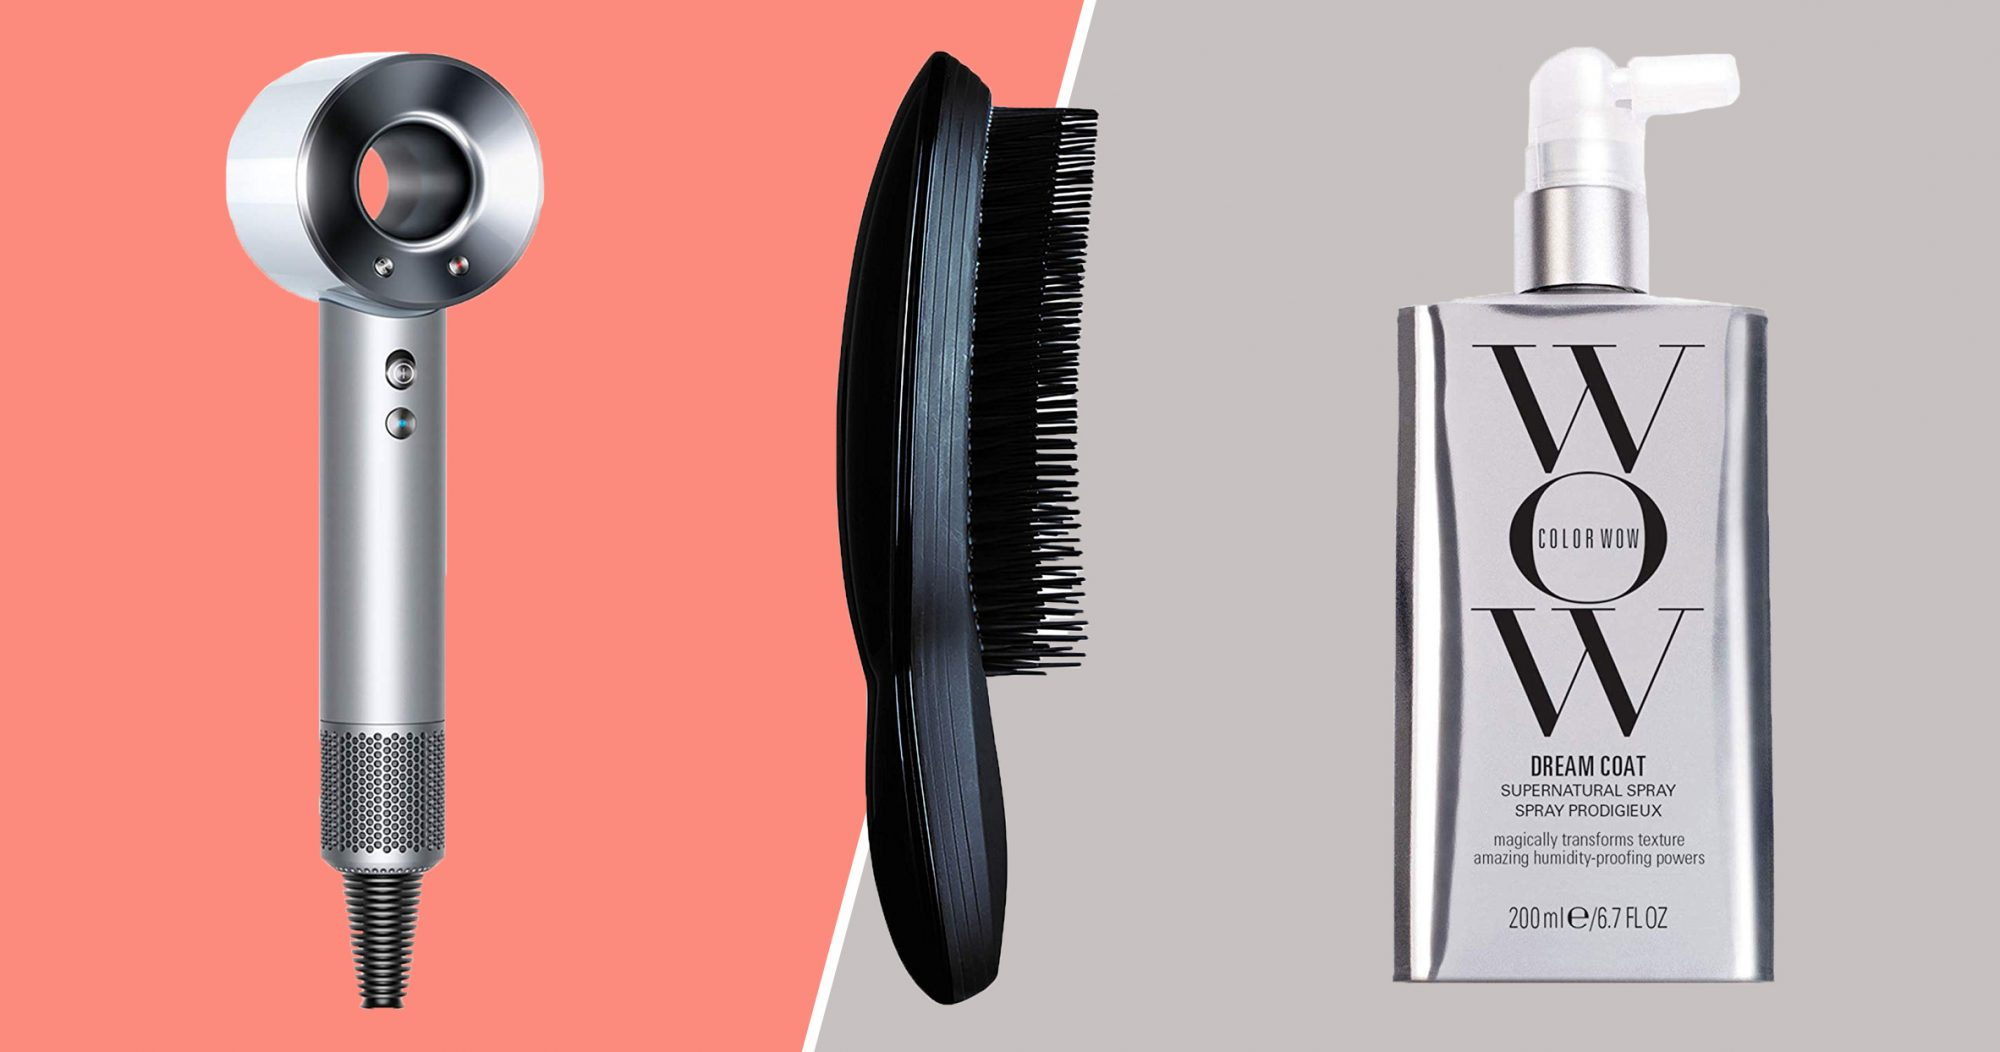 Color Wow Dream Coat, Tangle Teezer Ultimate Hairbrush, Dyson Supersonic Hair Dryer